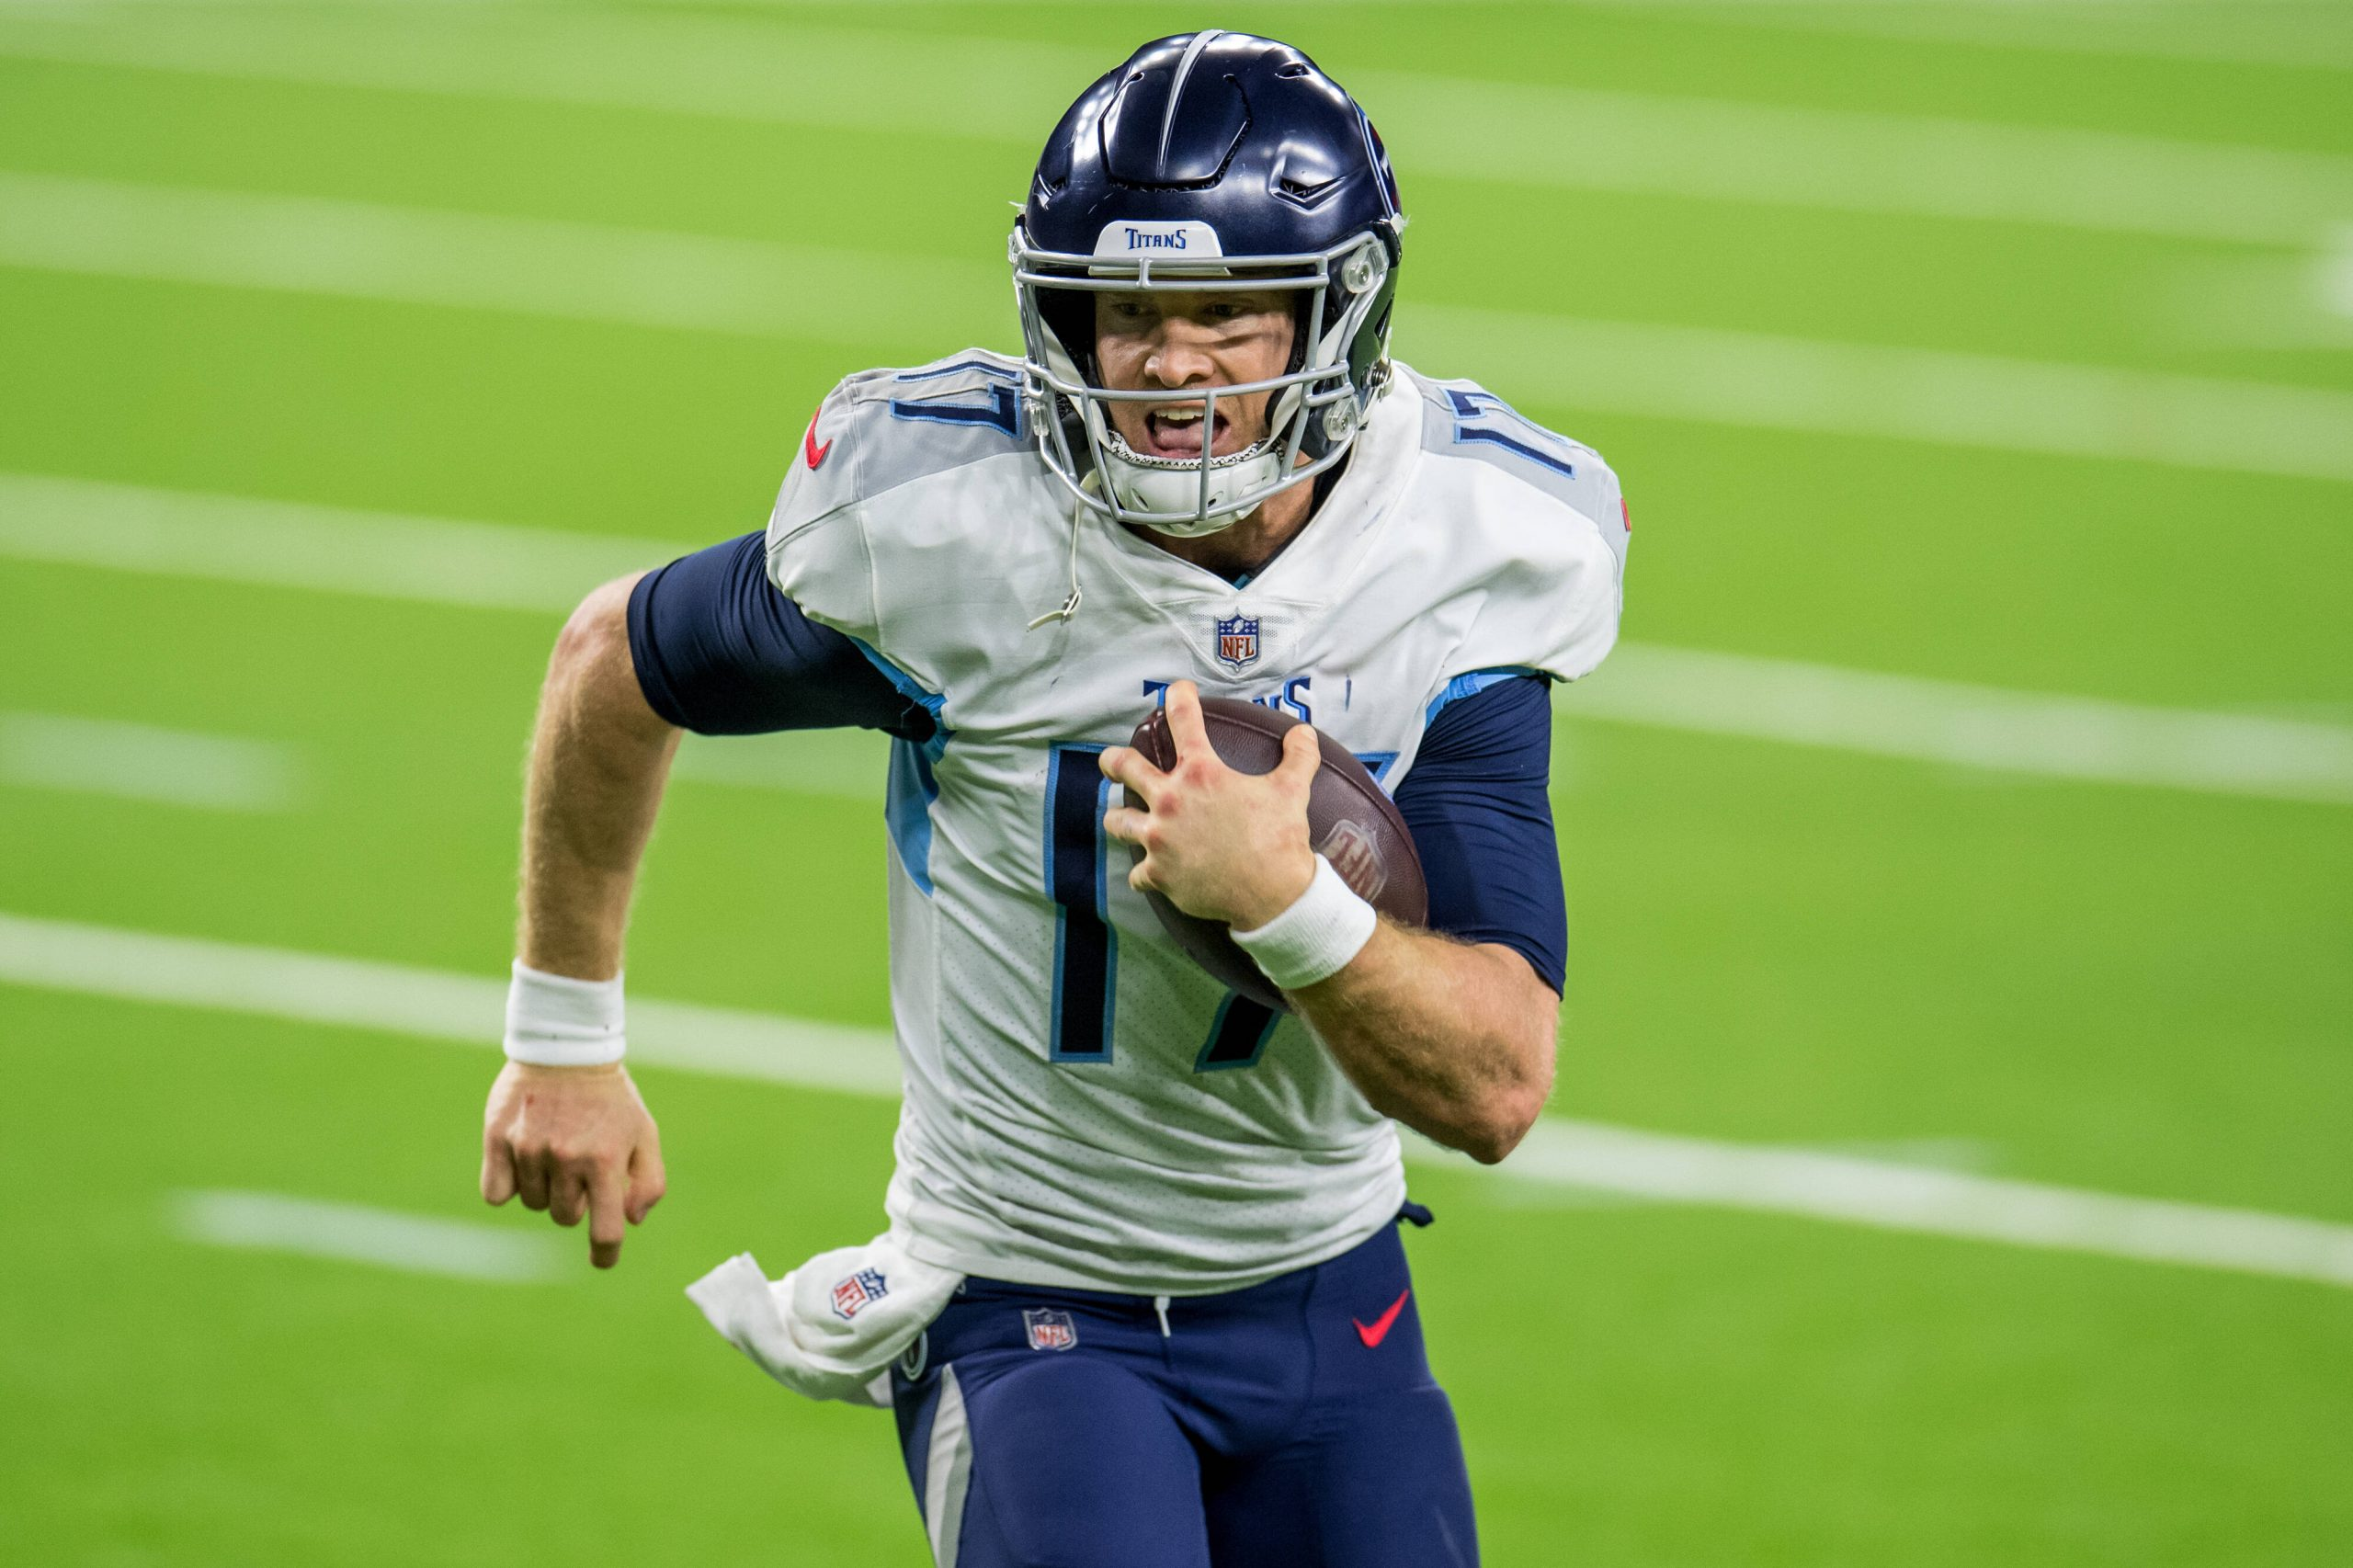 January 3, 2021: Tennessee Titans quarterback Ryan Tannehill (17) runs for a touchdown during the 4th quarter of an NFL,